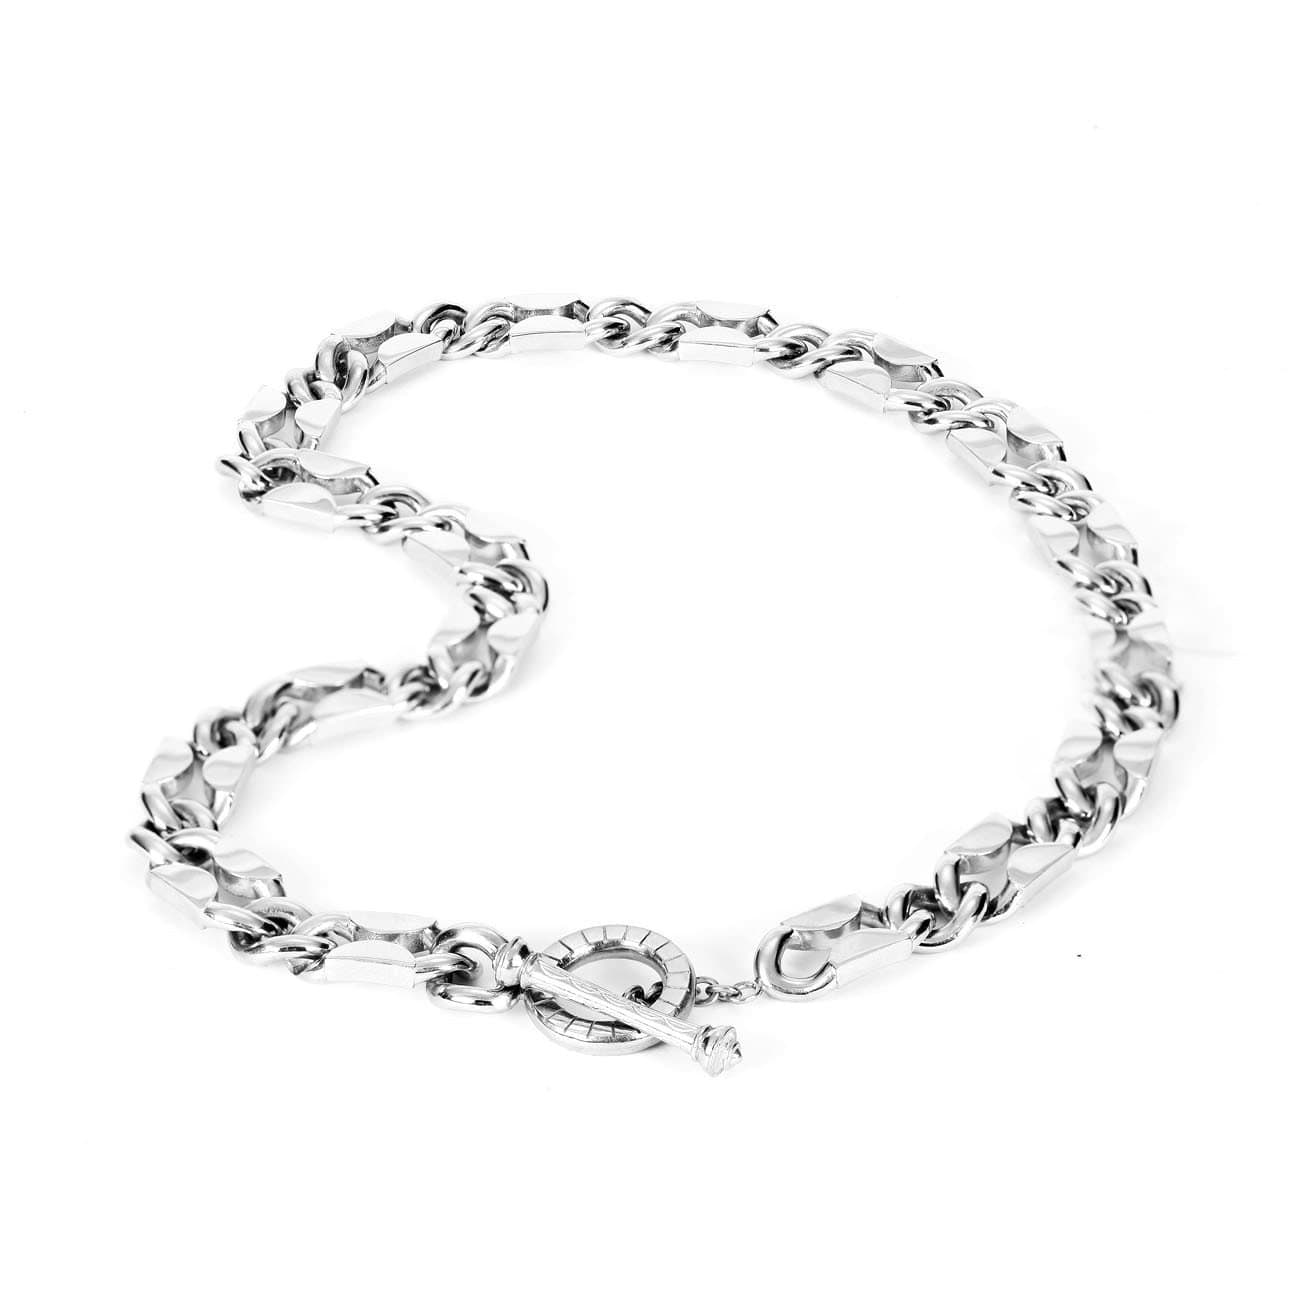 AIRE-LINK NECKLACE - Chris Aire Fine Jewelry & Timepieces